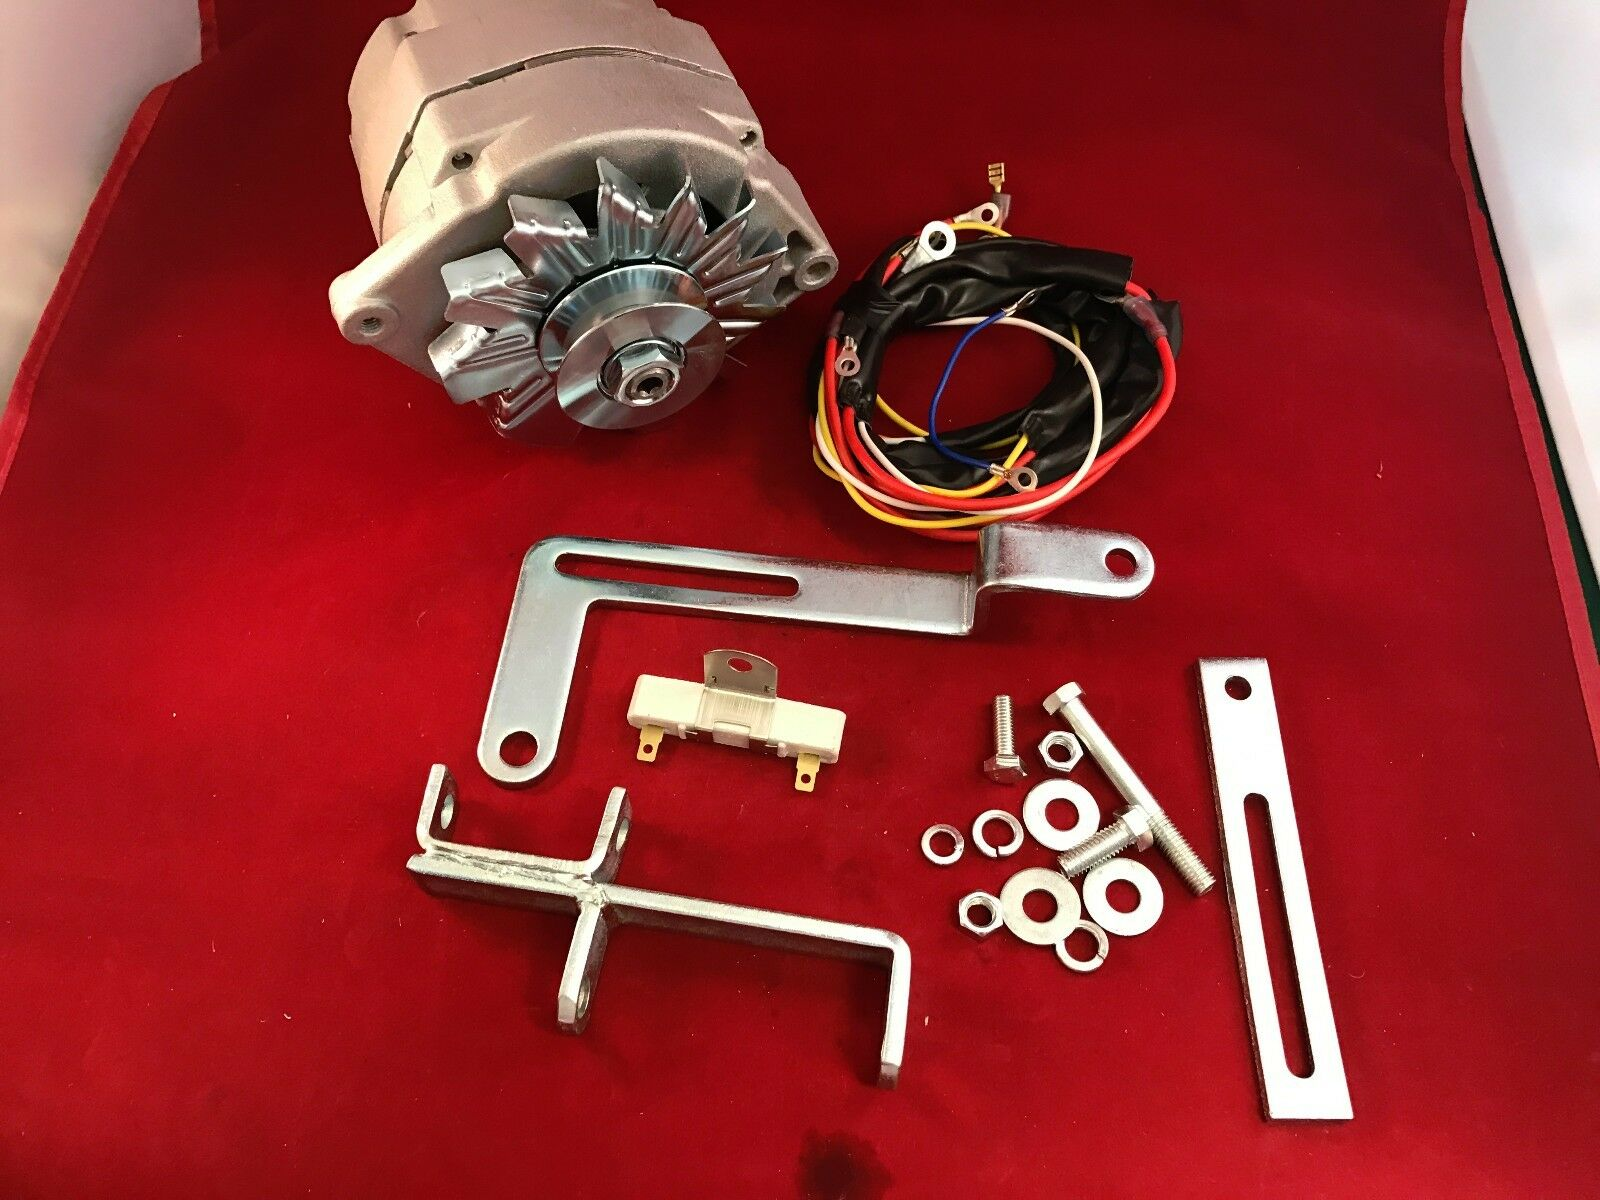 1950 1952 Ford 8n Alternator Generator Conversion Kit 6 To 12 Volt Wiring Diagram Restoration And Repair Tips Battery 1 Of 8free Shipping